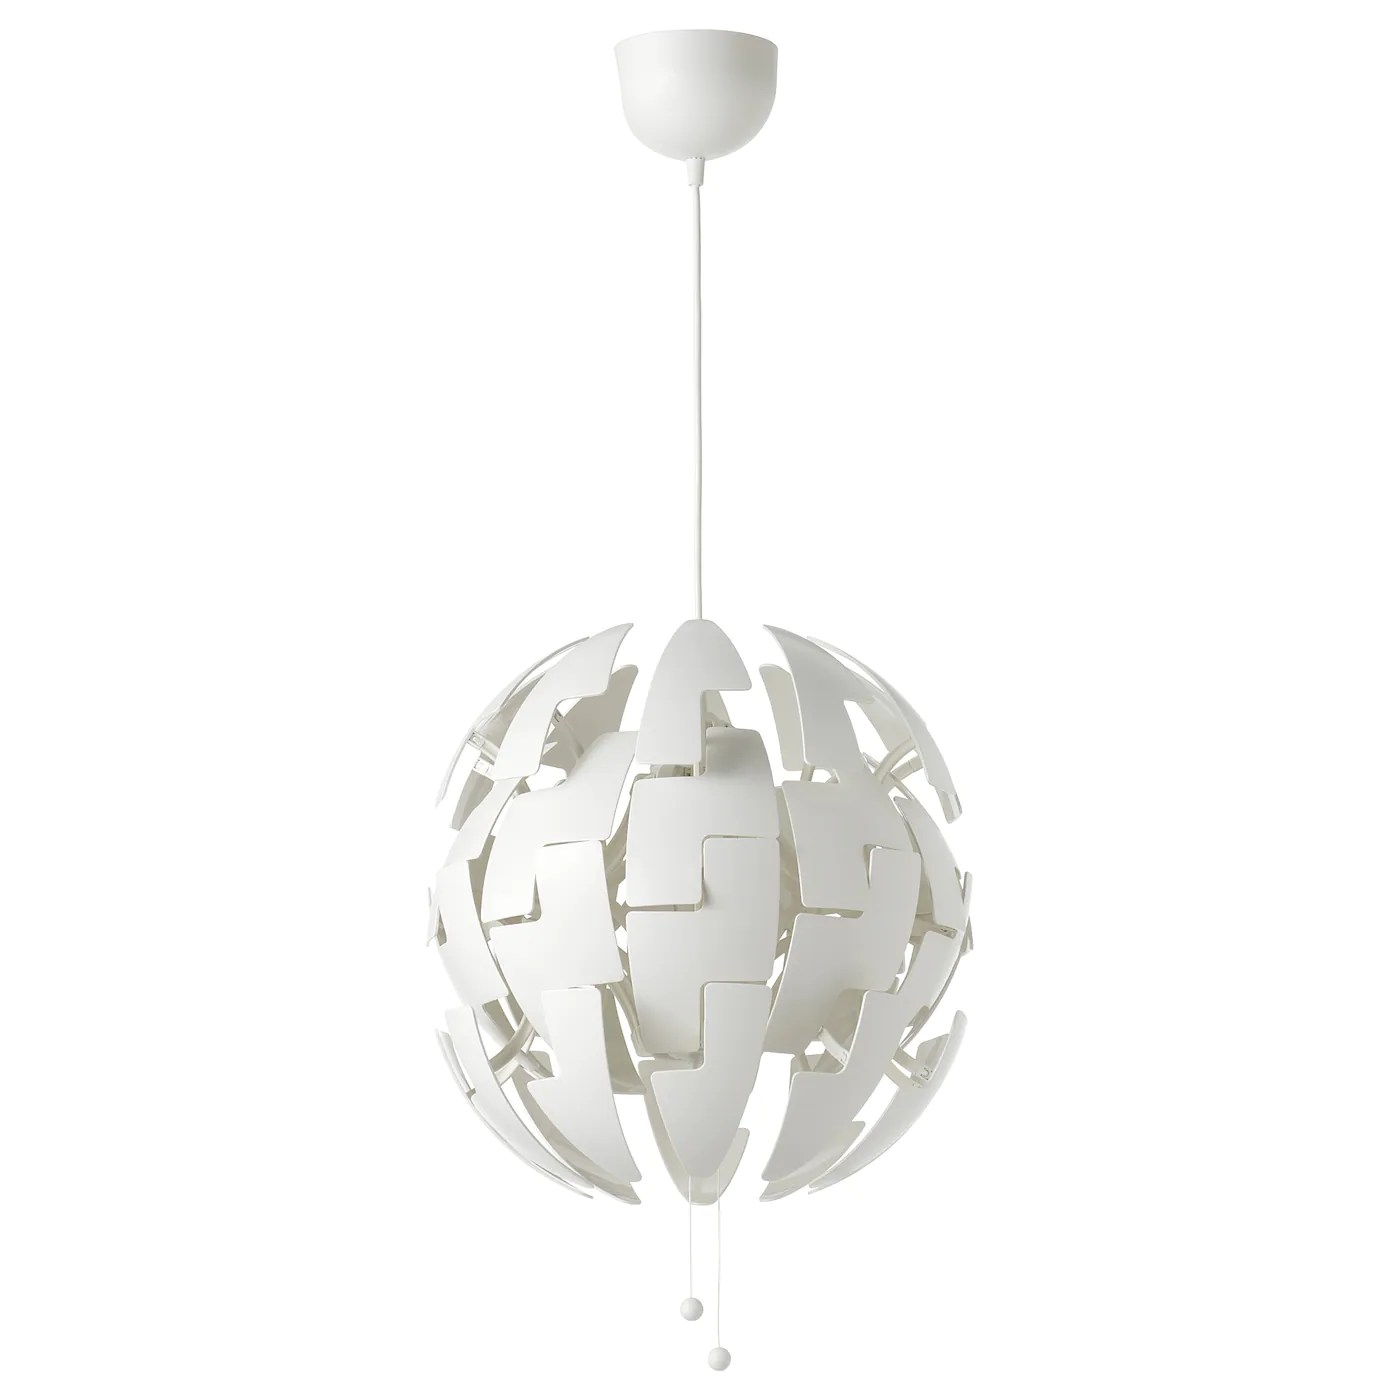 If you love crowds, there's a good chance you'd love visiting ikea on a saturday afternoon. Ikea Ps 2014 Lampada A Sospensione Bianco 35 Cm Ikea It